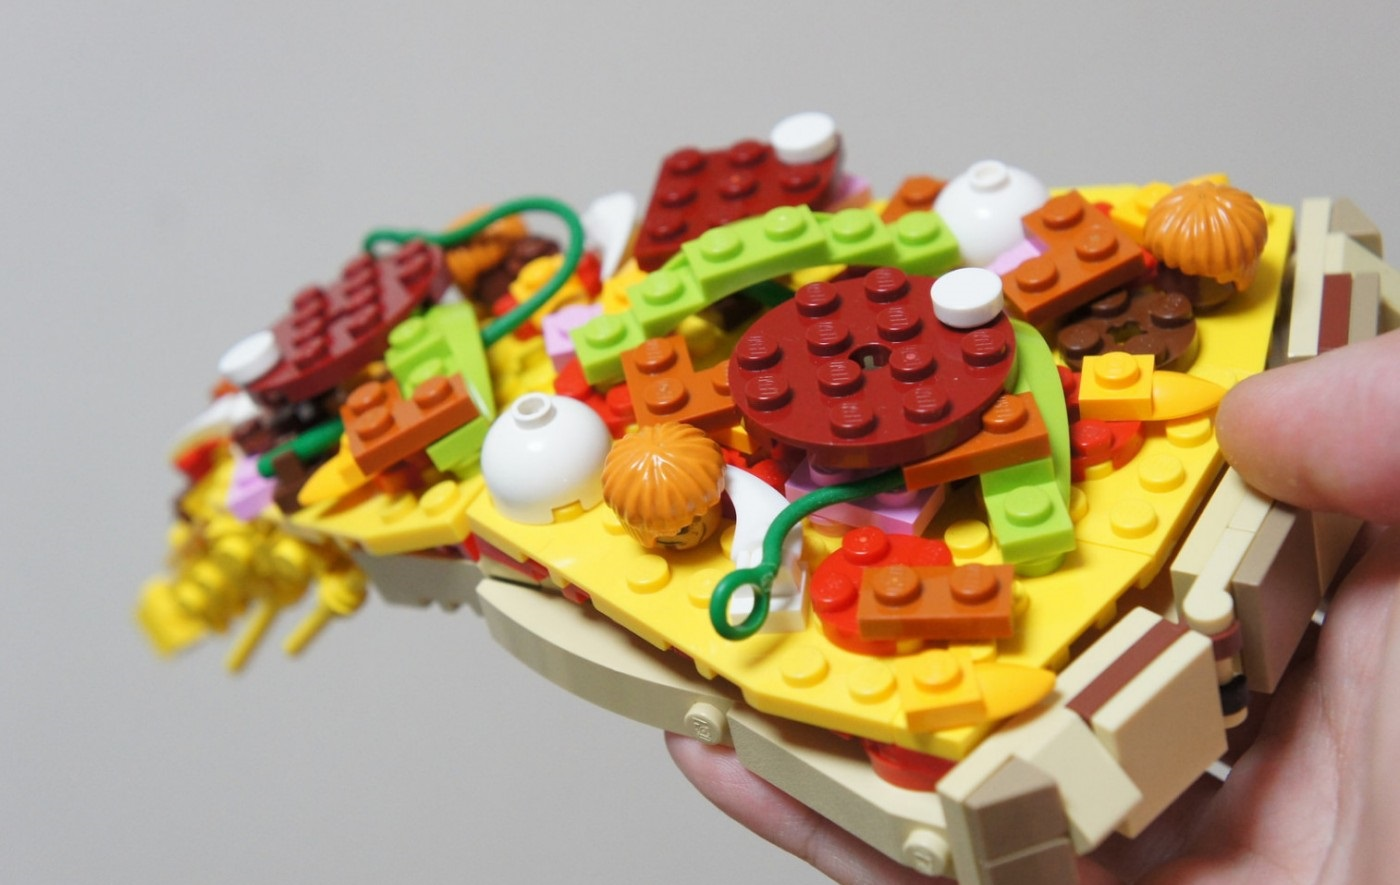 lego_food_pizza1_1.jpg